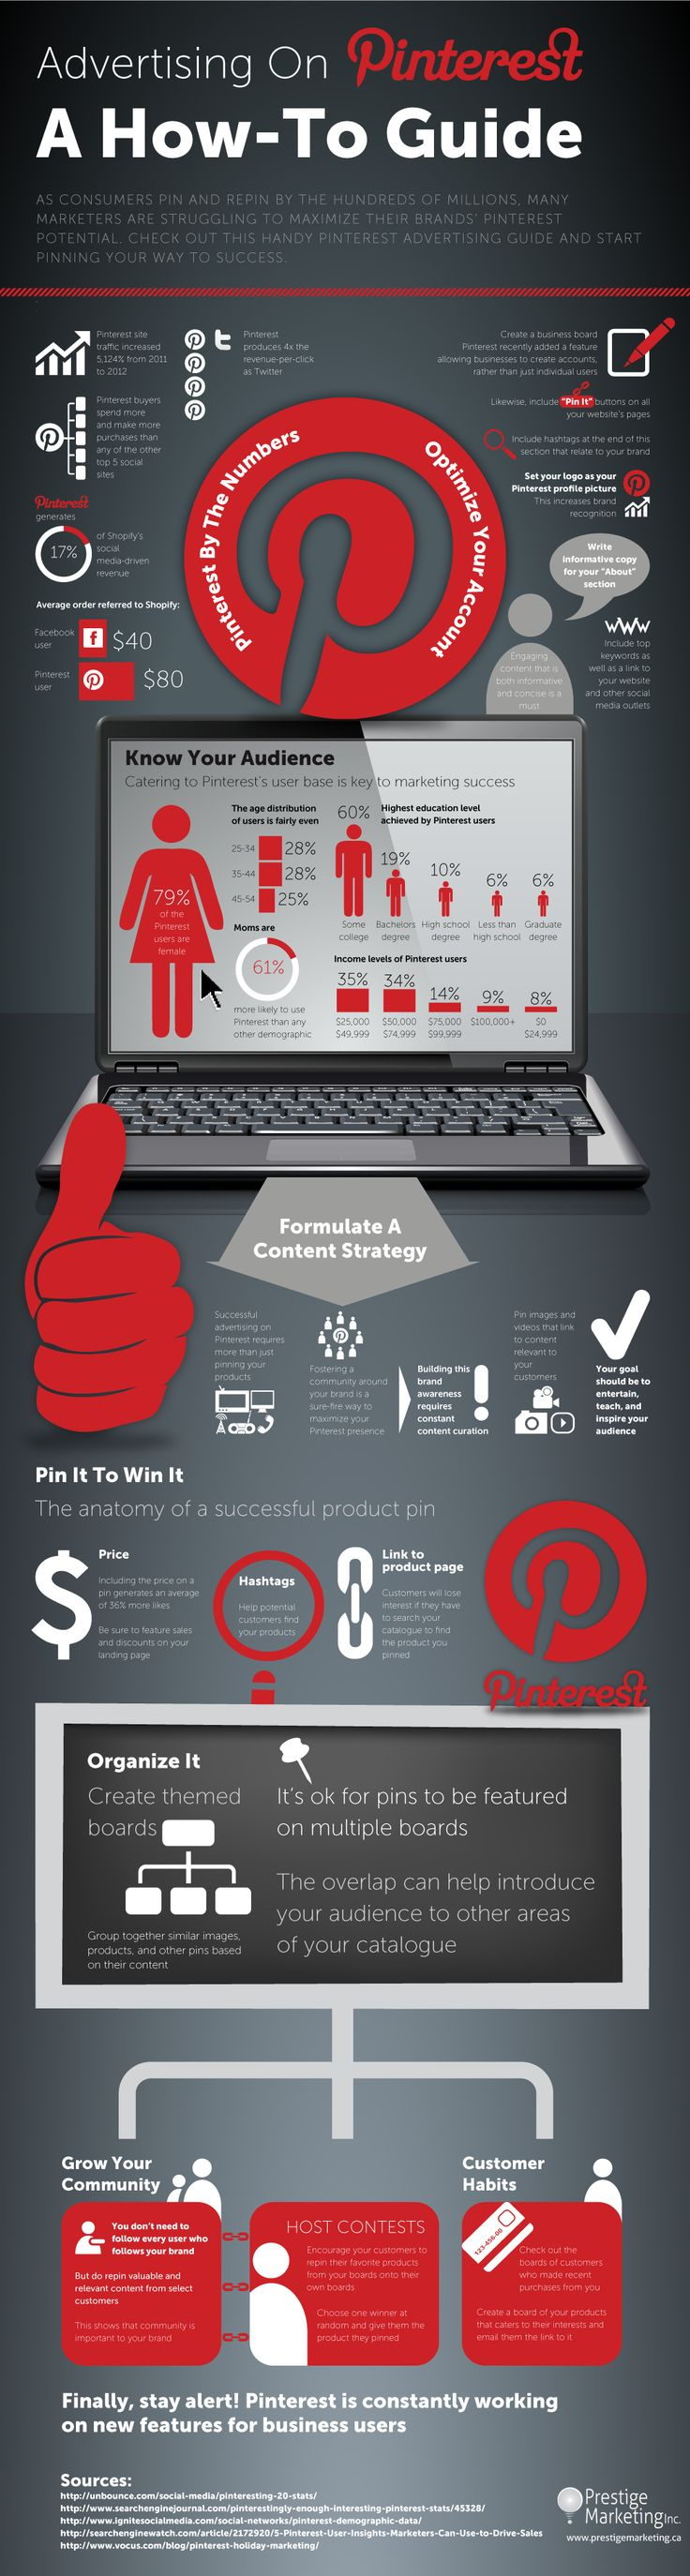 Infographic: A Marketer's Guide To Pinterest (Pub. Mar 4, 2013) #pinfographics #infographics